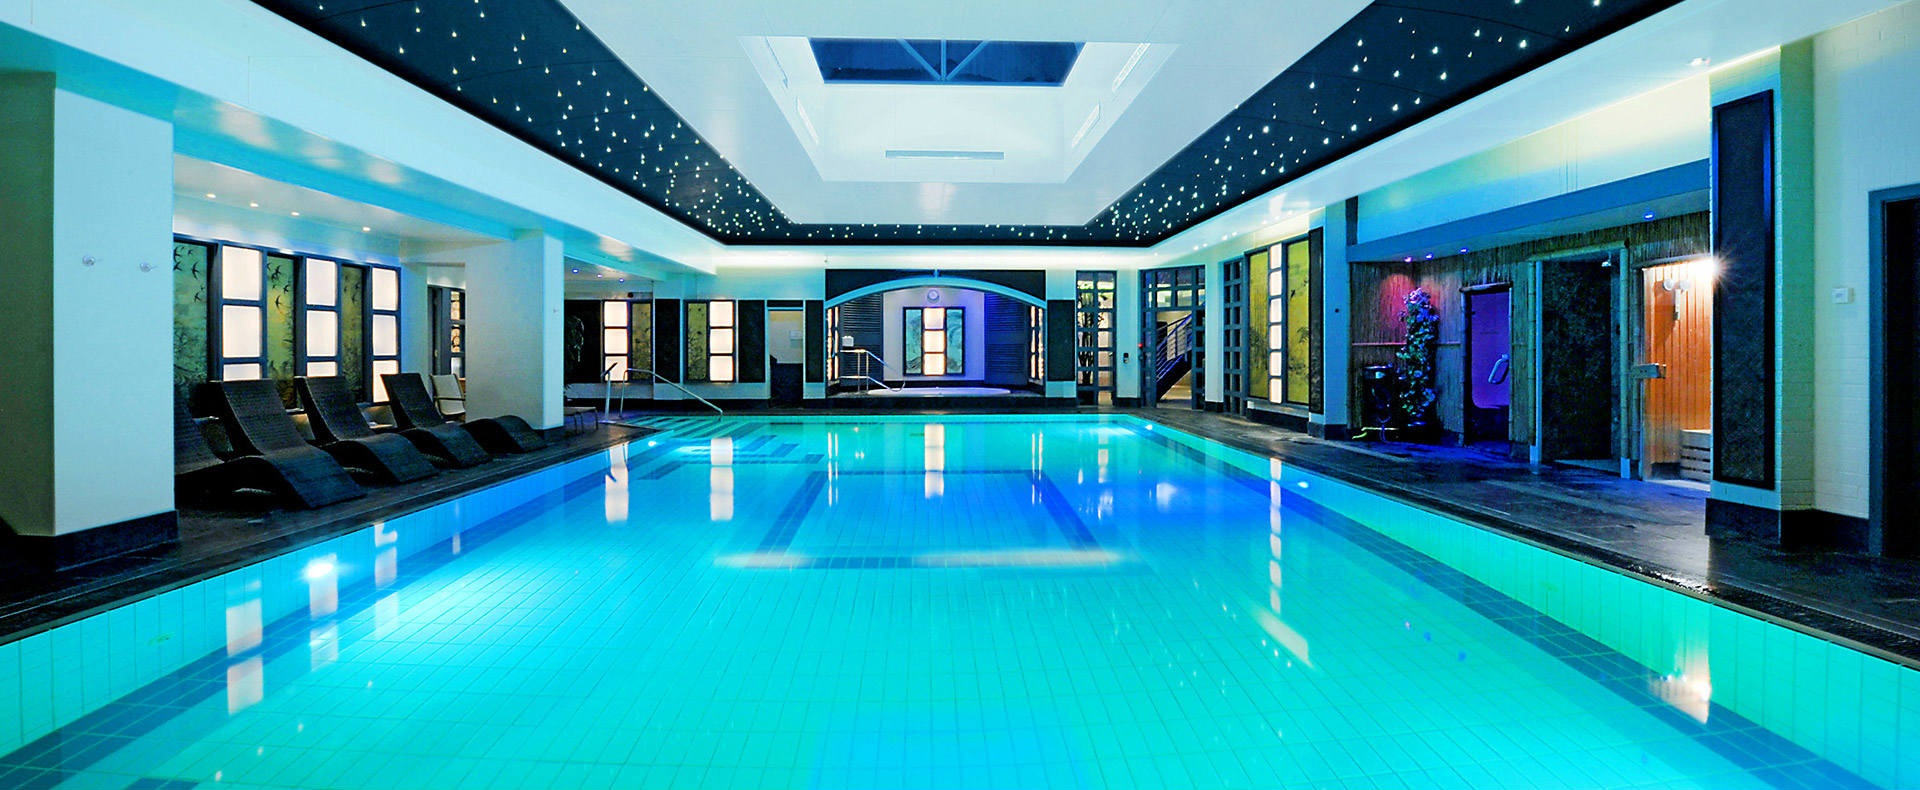 SenSpa | Careys Manor Hotel